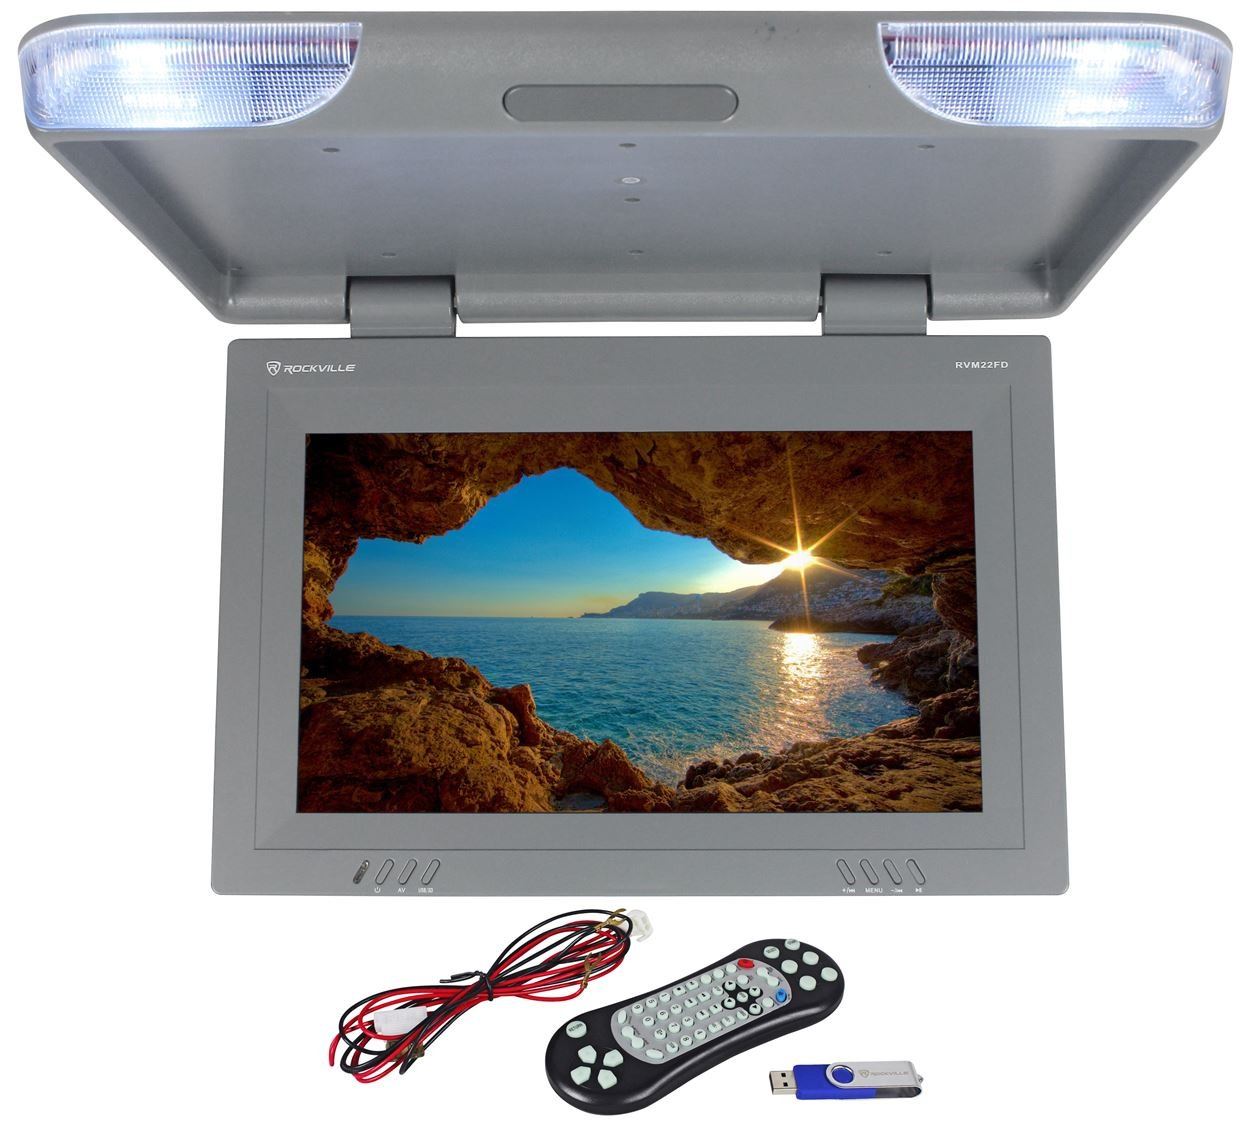 Rockville RVM22FD-GR 22'' TFT Grey Flip Down Car Monitor w/ USB/SD/Video Games